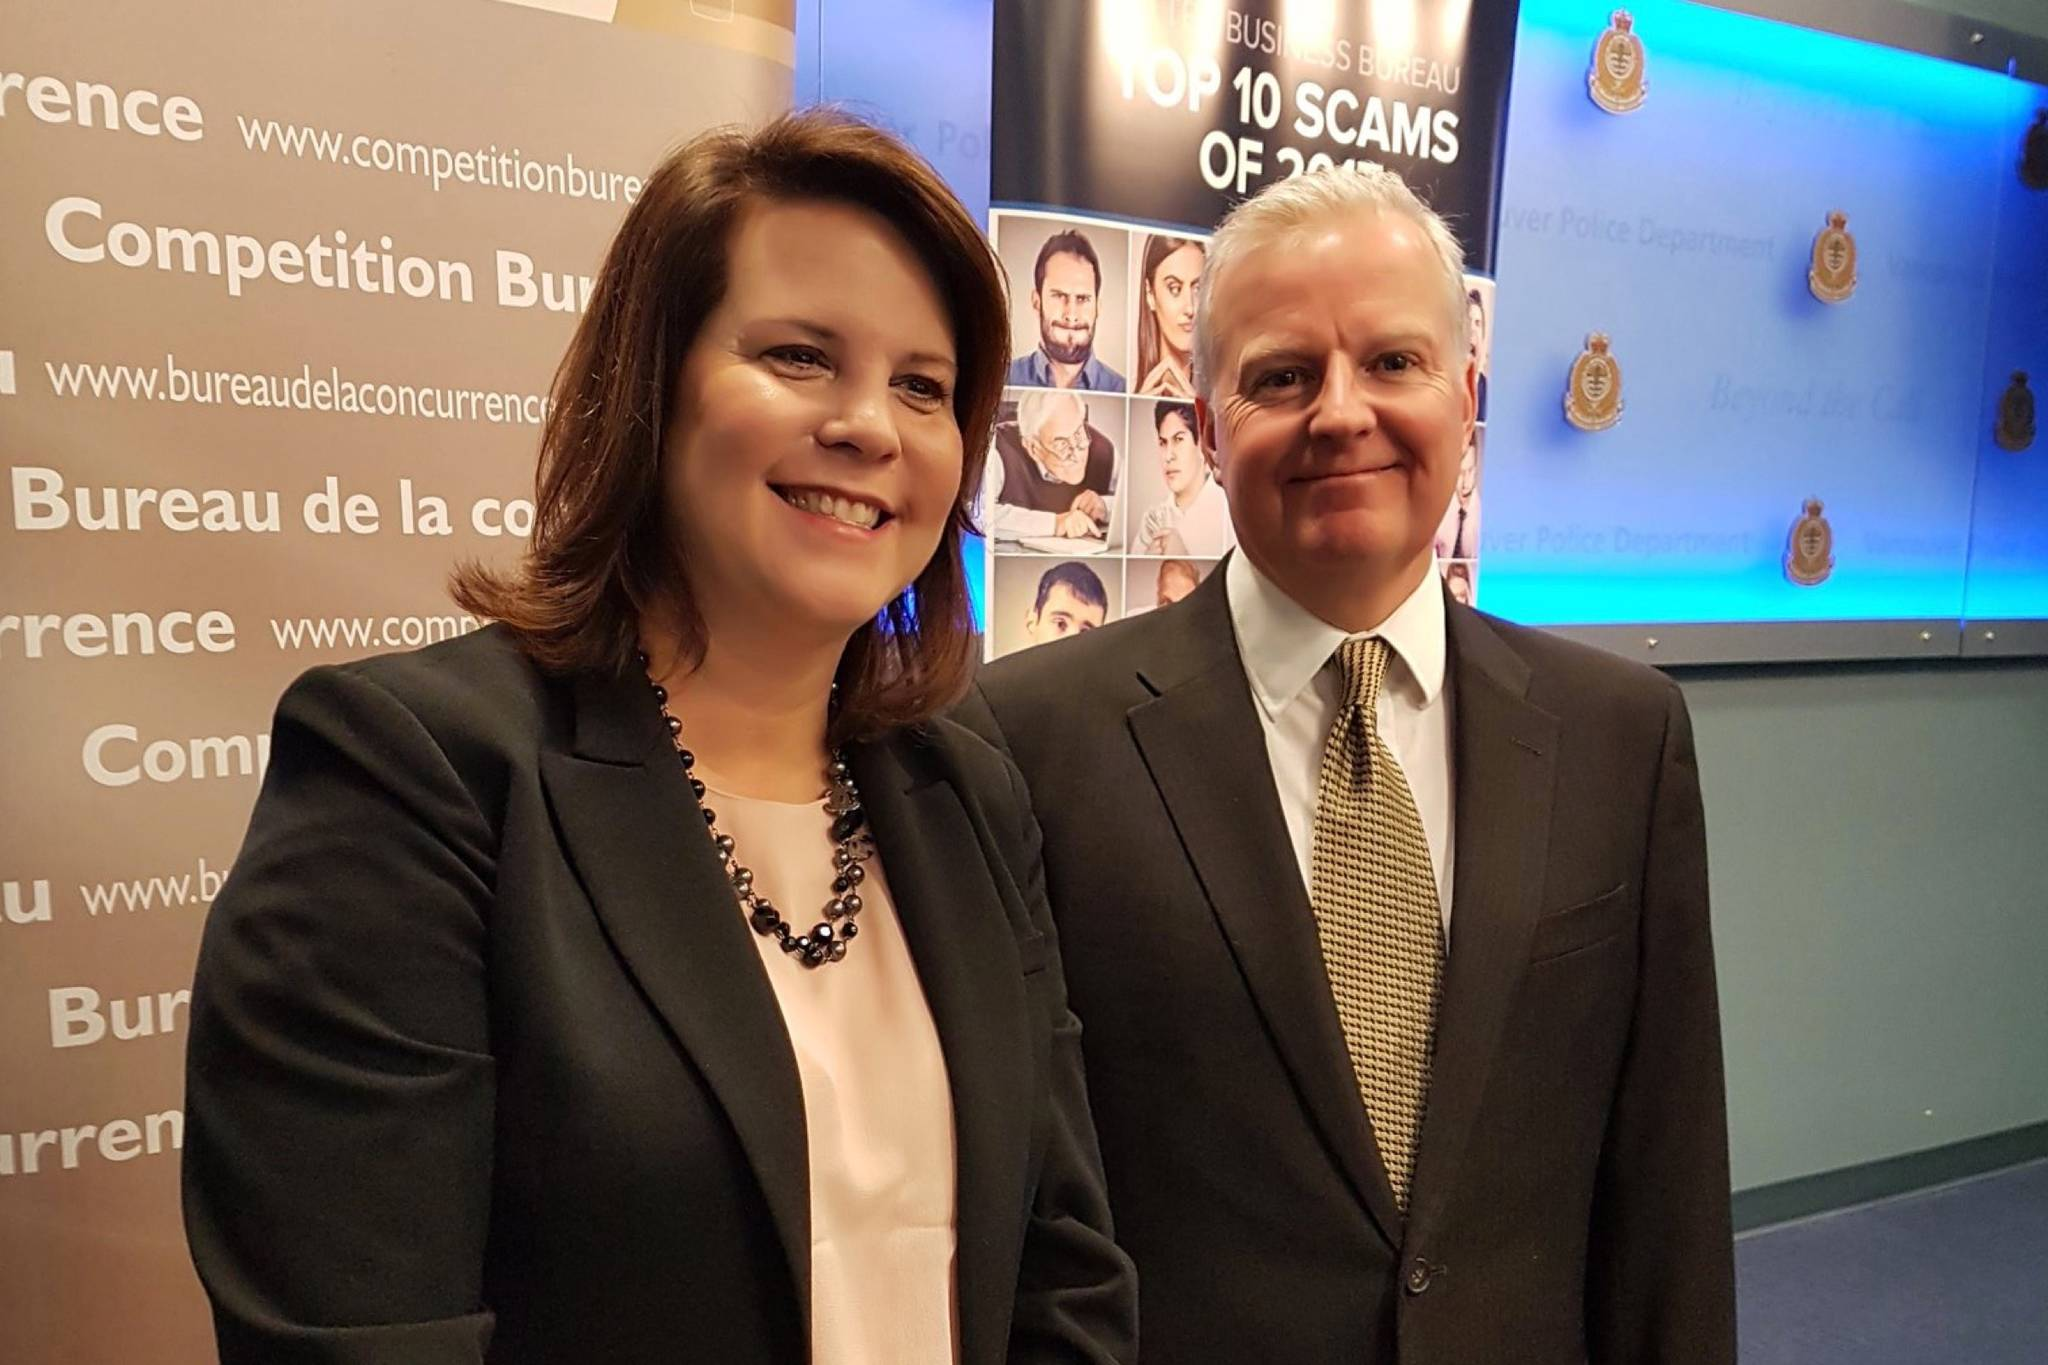 BBB serving Mainland BC President Danielle Primrose and Victor Hammill with the Competition Bureau of Canada speaking at National Top 10 Scams. (CompBureau/Twitter)